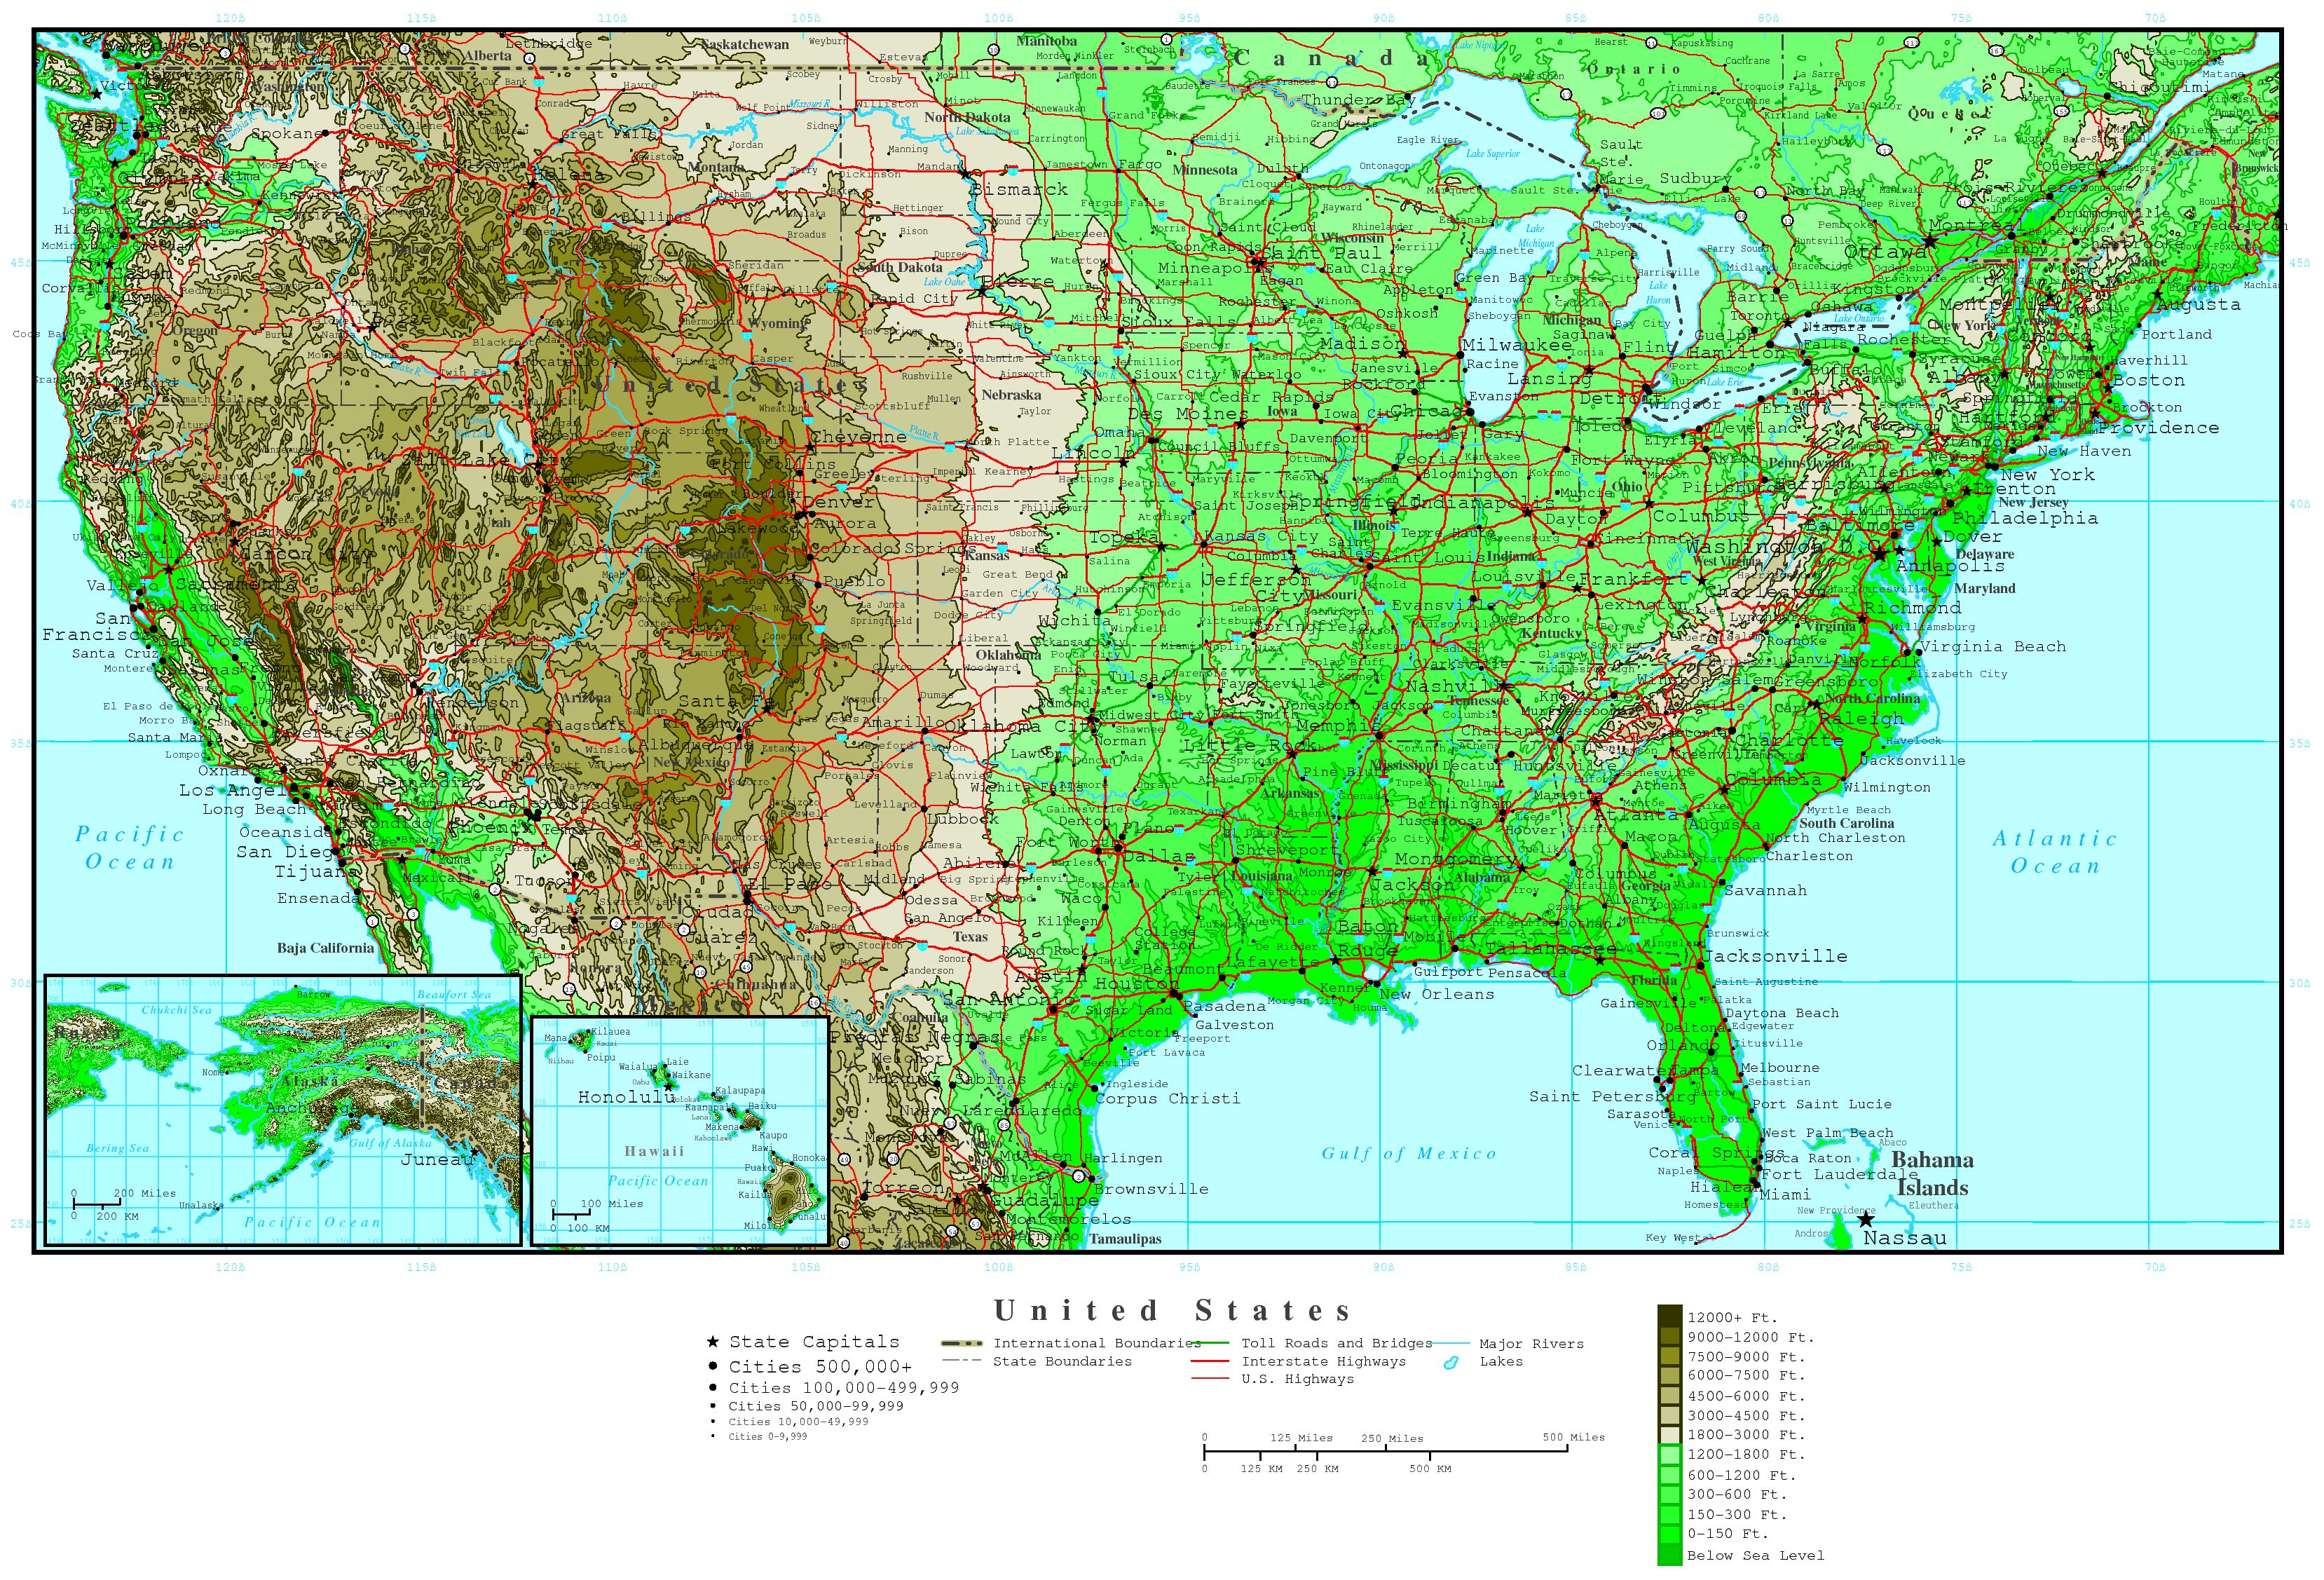 Large Map Of United States.Large Detailed Road And Elevation Map Of The Usa The Usa Large